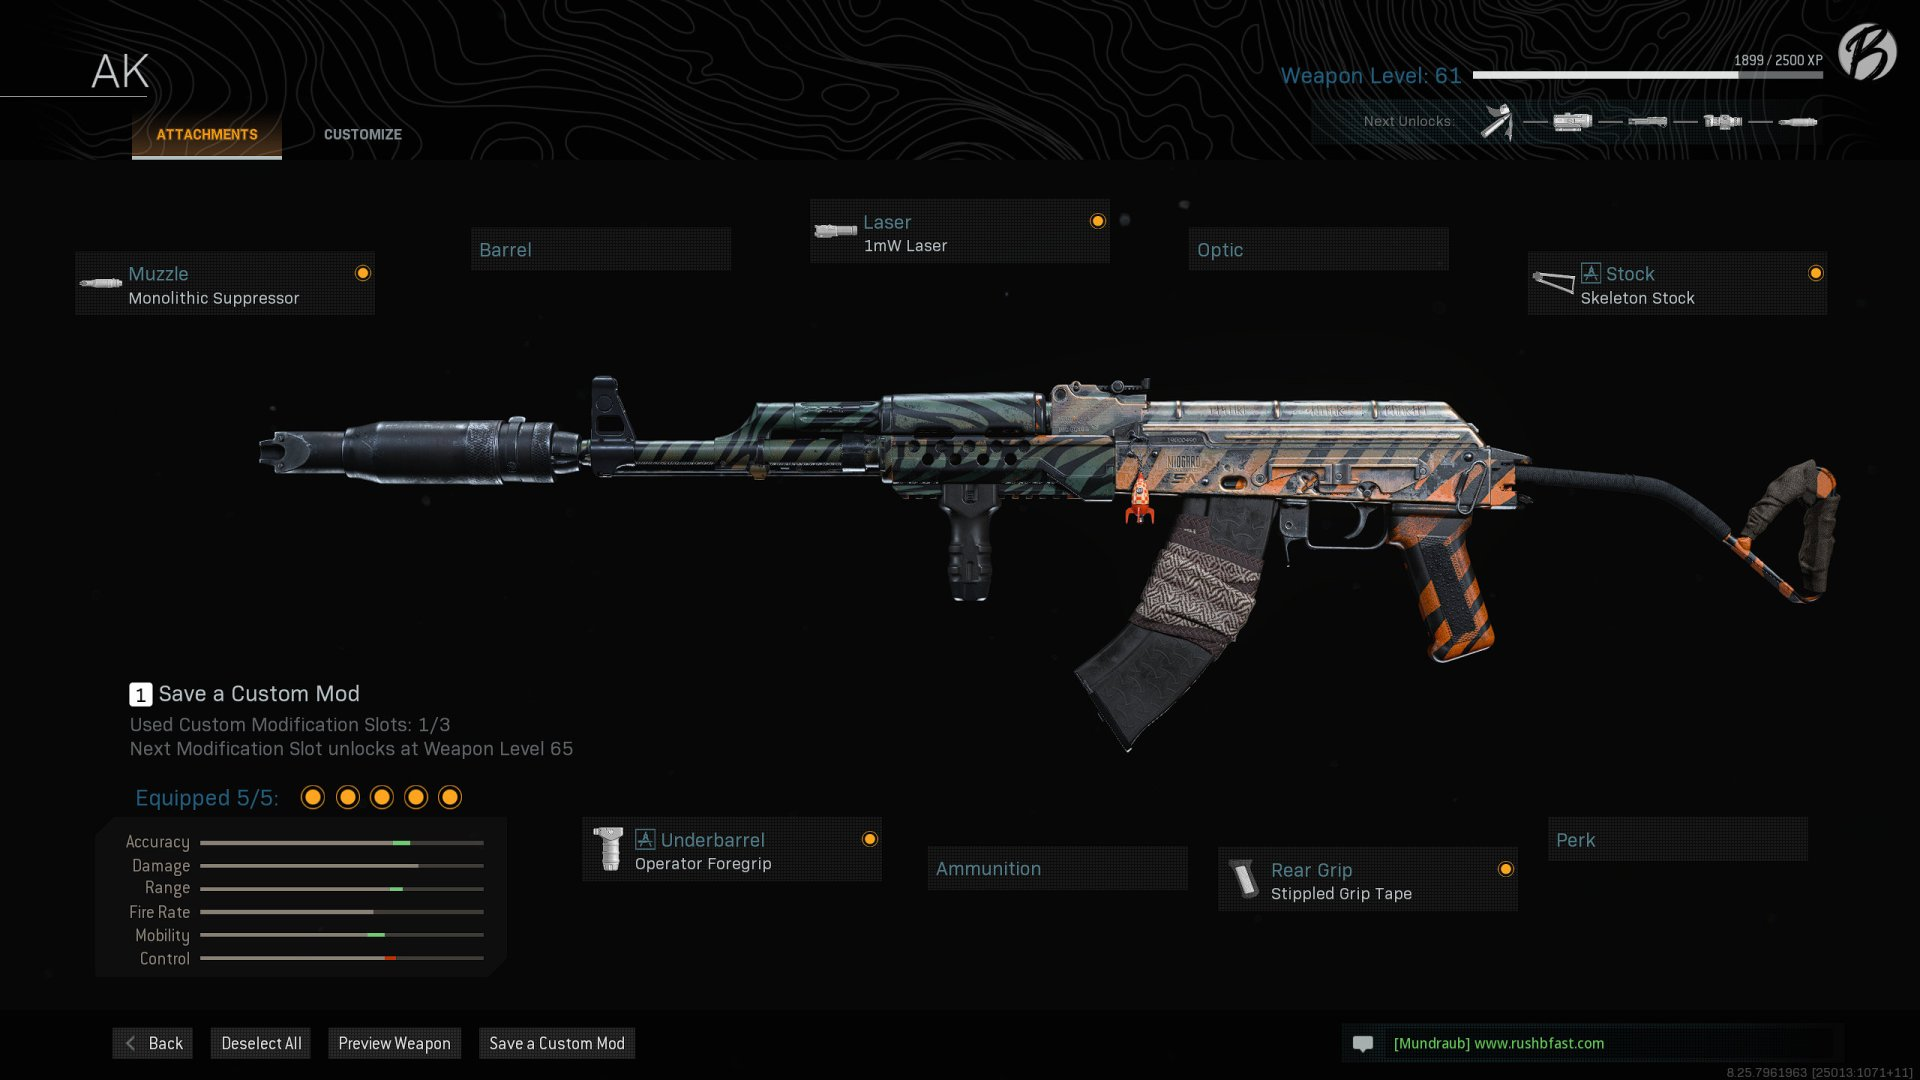 AK-47: Monolithic Suppressor, Operator Foregrip, 1mW Laser, Stippled Grip Tape, Skeleton Stock